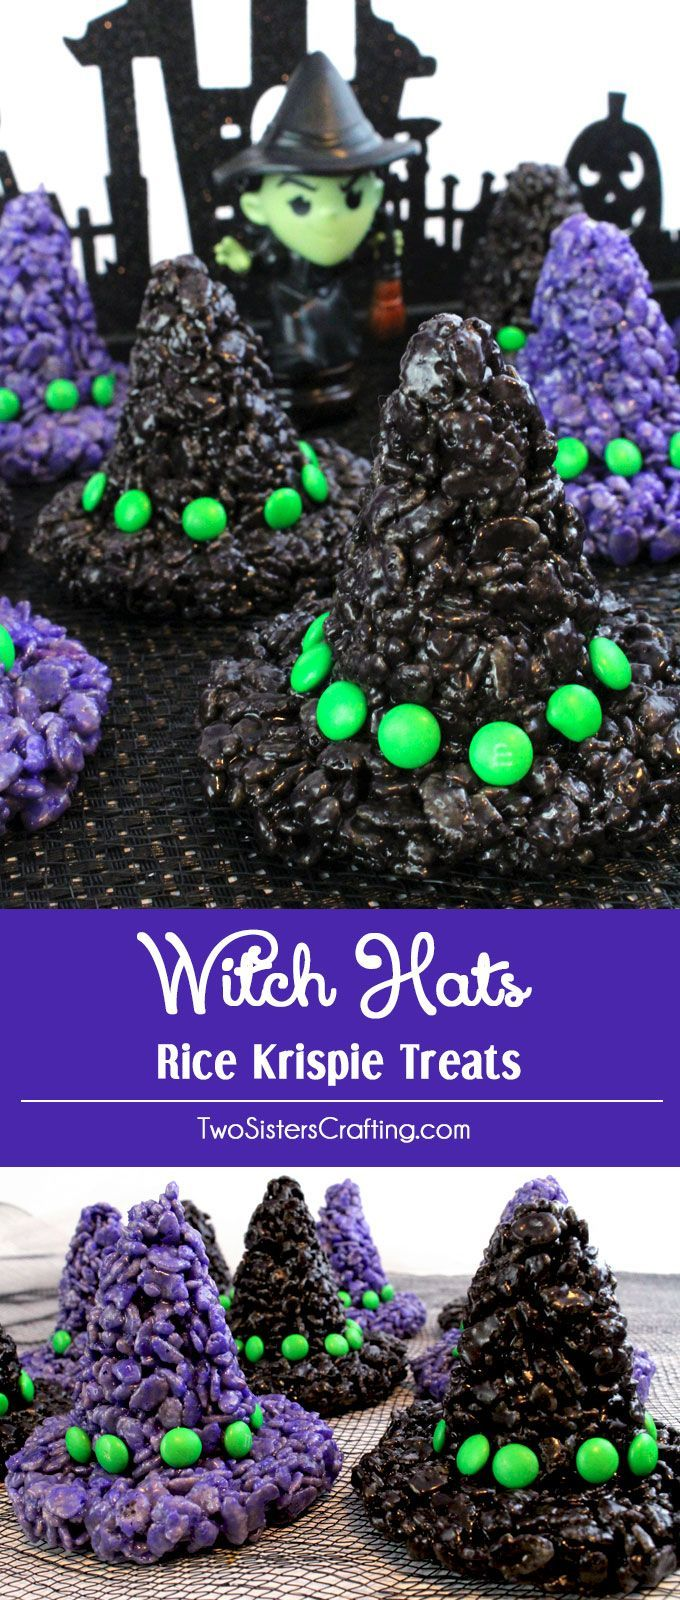 These Witch Hats Rice Krispie Treats will be everyone's favorite treat at your Halloween Party. They are super easy to make and are a spooky and fun Halloween Dessert that every one will love. Pin this adorable Halloween Treat for later and follow us for more fun Halloween Food Ideas.